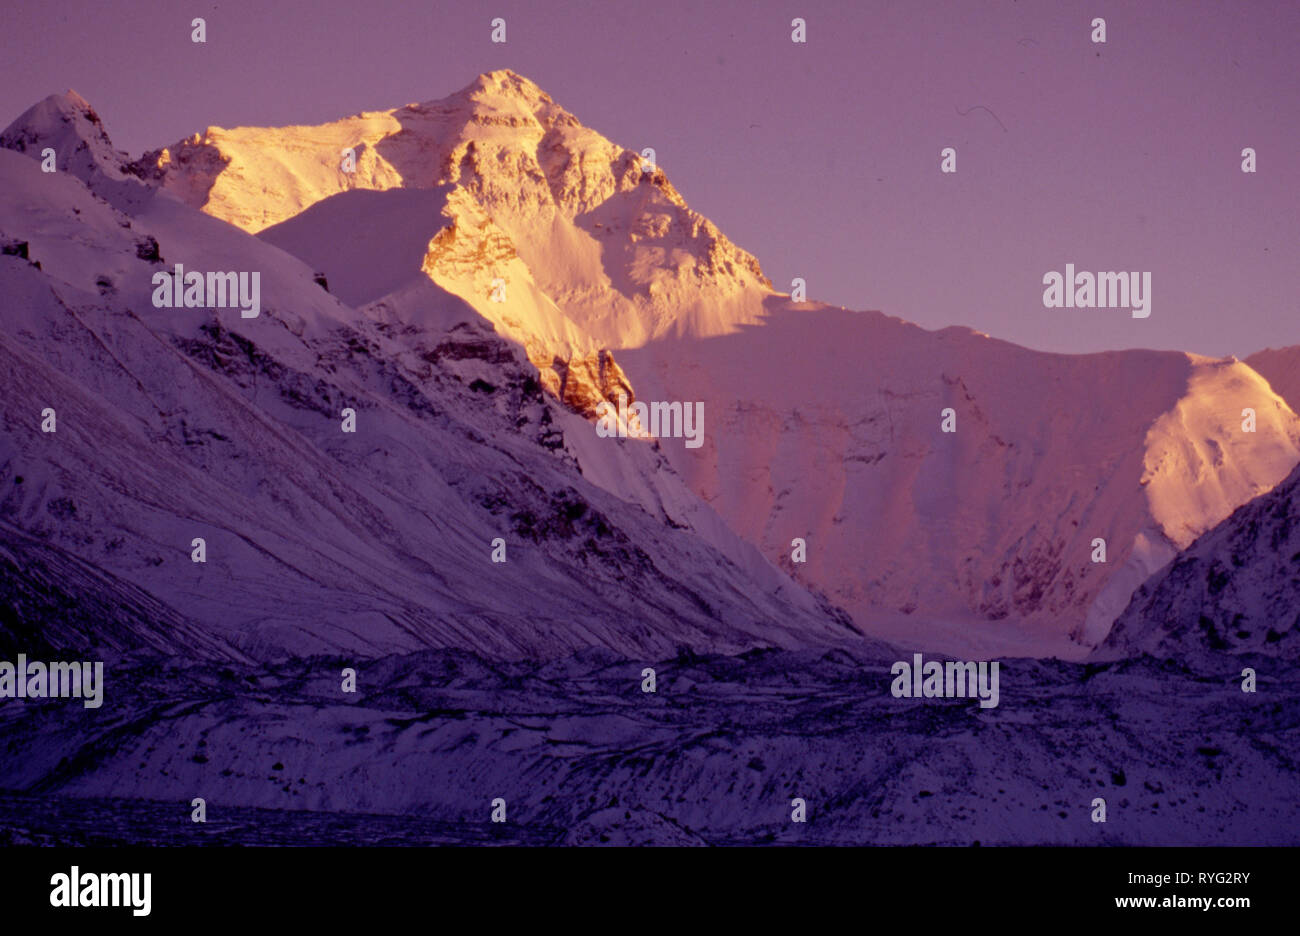 Evening light on Everest as seen from the Rongbuk valley in Tibet, photographed in 1990's - Stock Image